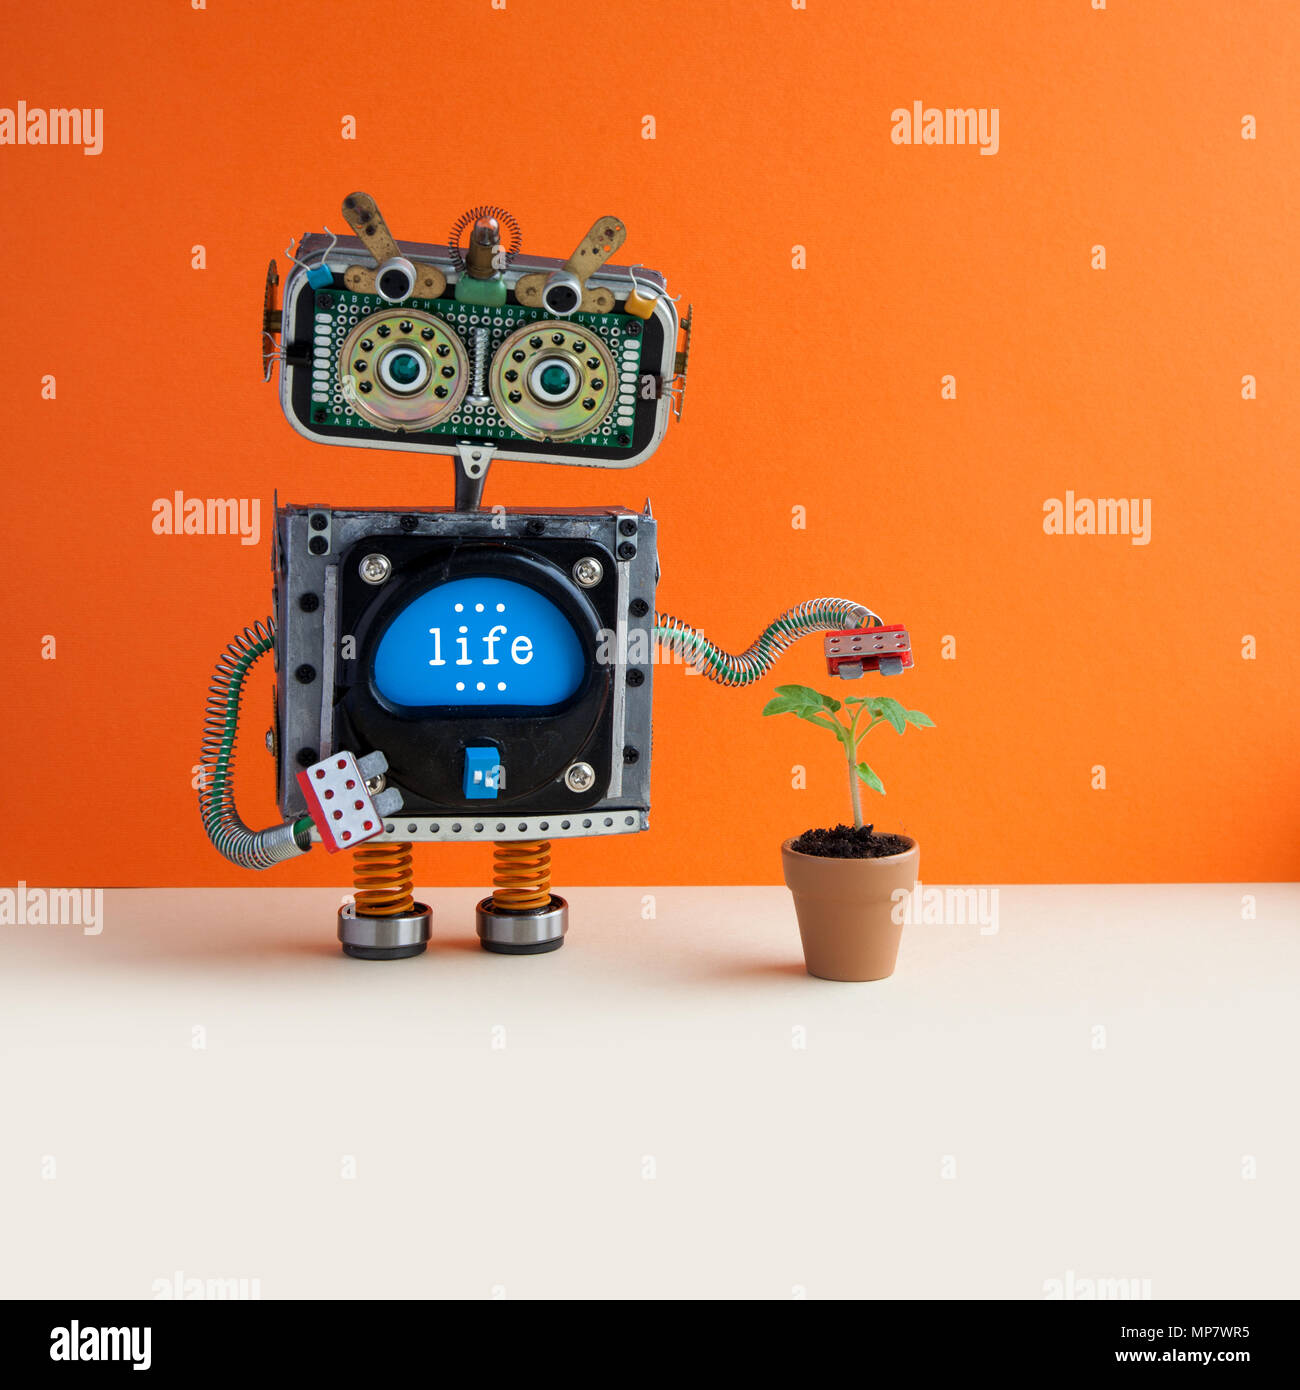 Organic eco life concept. Robot with a small green sprout plant in a clay flower pot. Orange wall background, copy space. - Stock Image